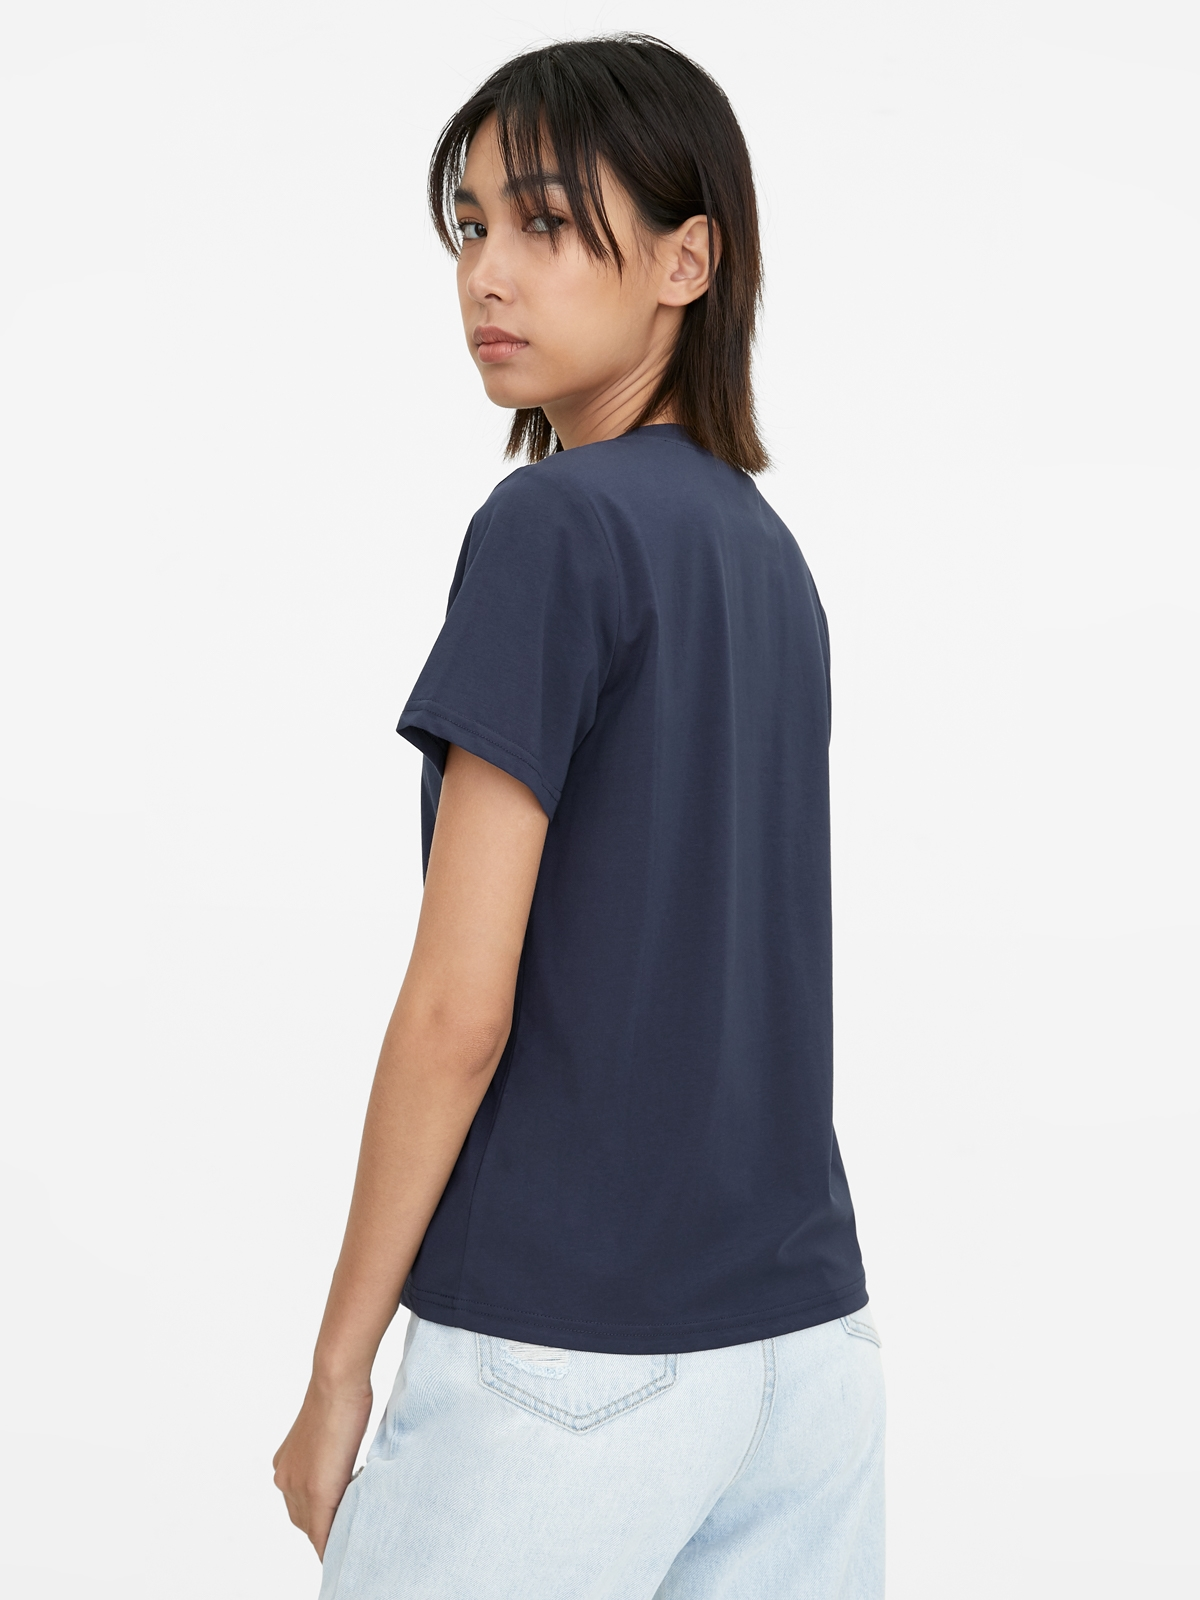 Trouble Maker Graphic Tee Navy